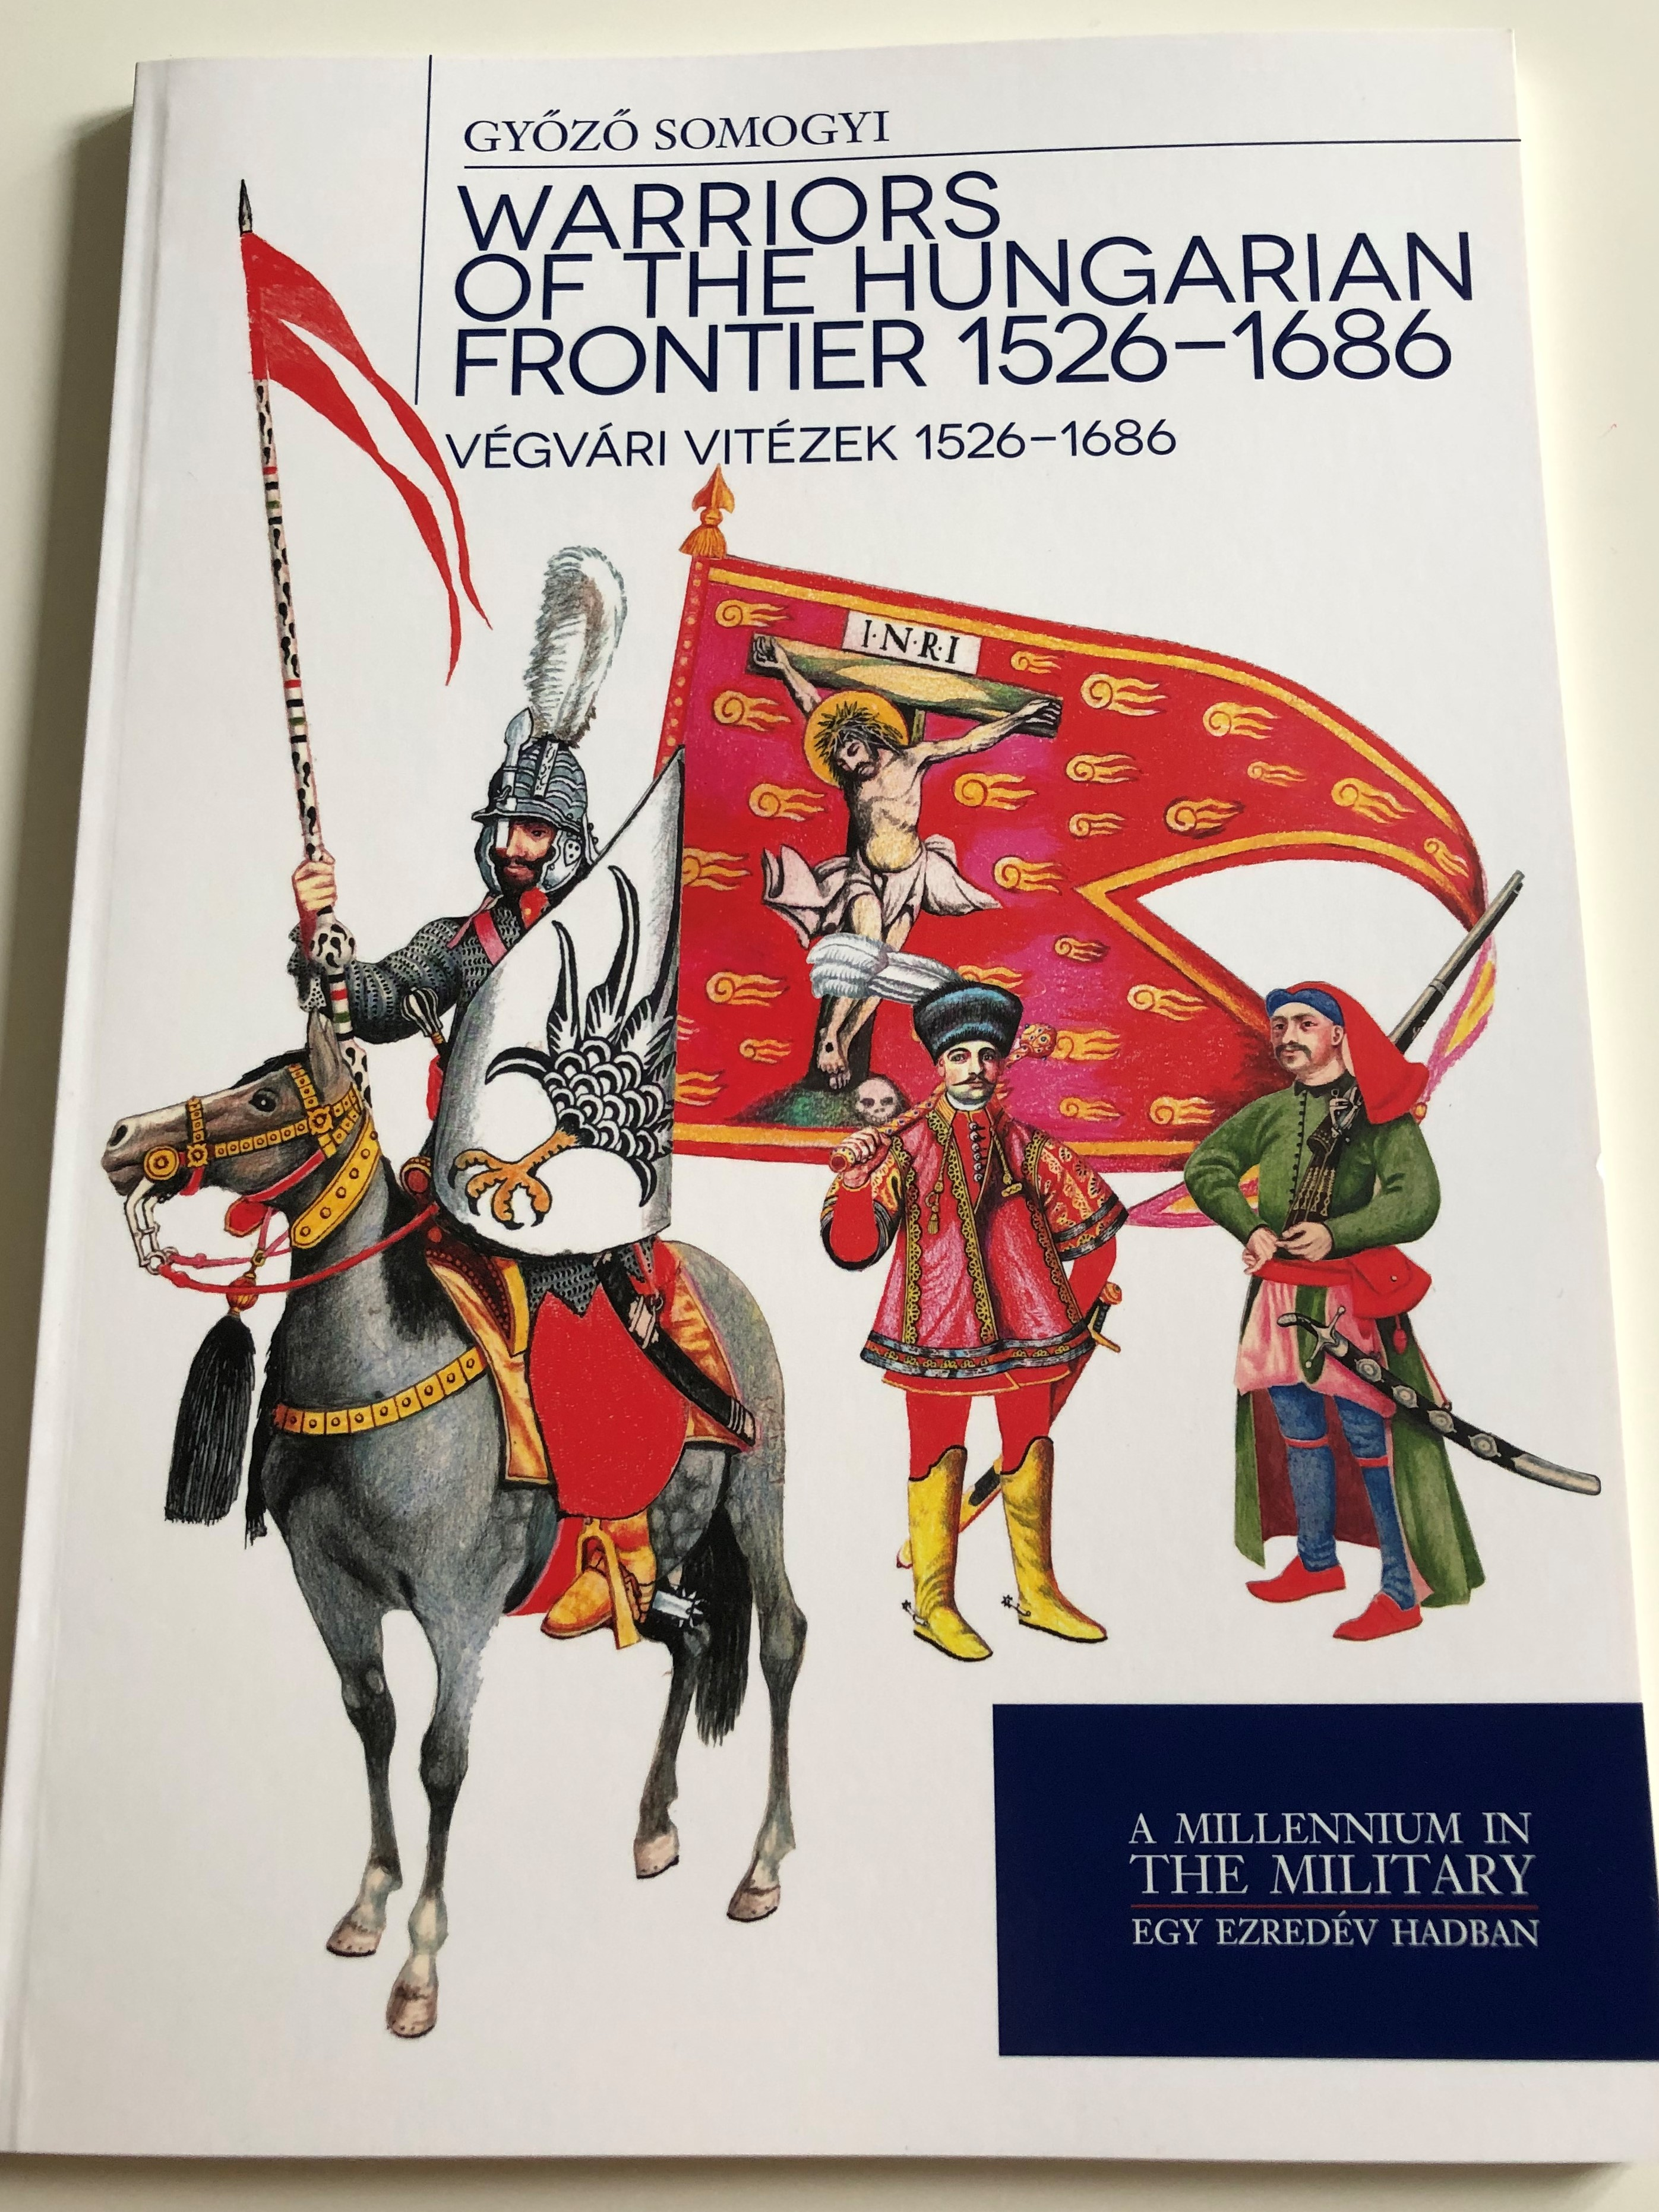 warriors-of-the-hungarian-frontier-1526-1686-by-gy-z-somogyi-v-gv-ri-vit-zek-1526-1686-a-millennium-in-the-military-egy-ezred-v-hadban-paperback-2014-hm-zr-nyi-1-.jpg